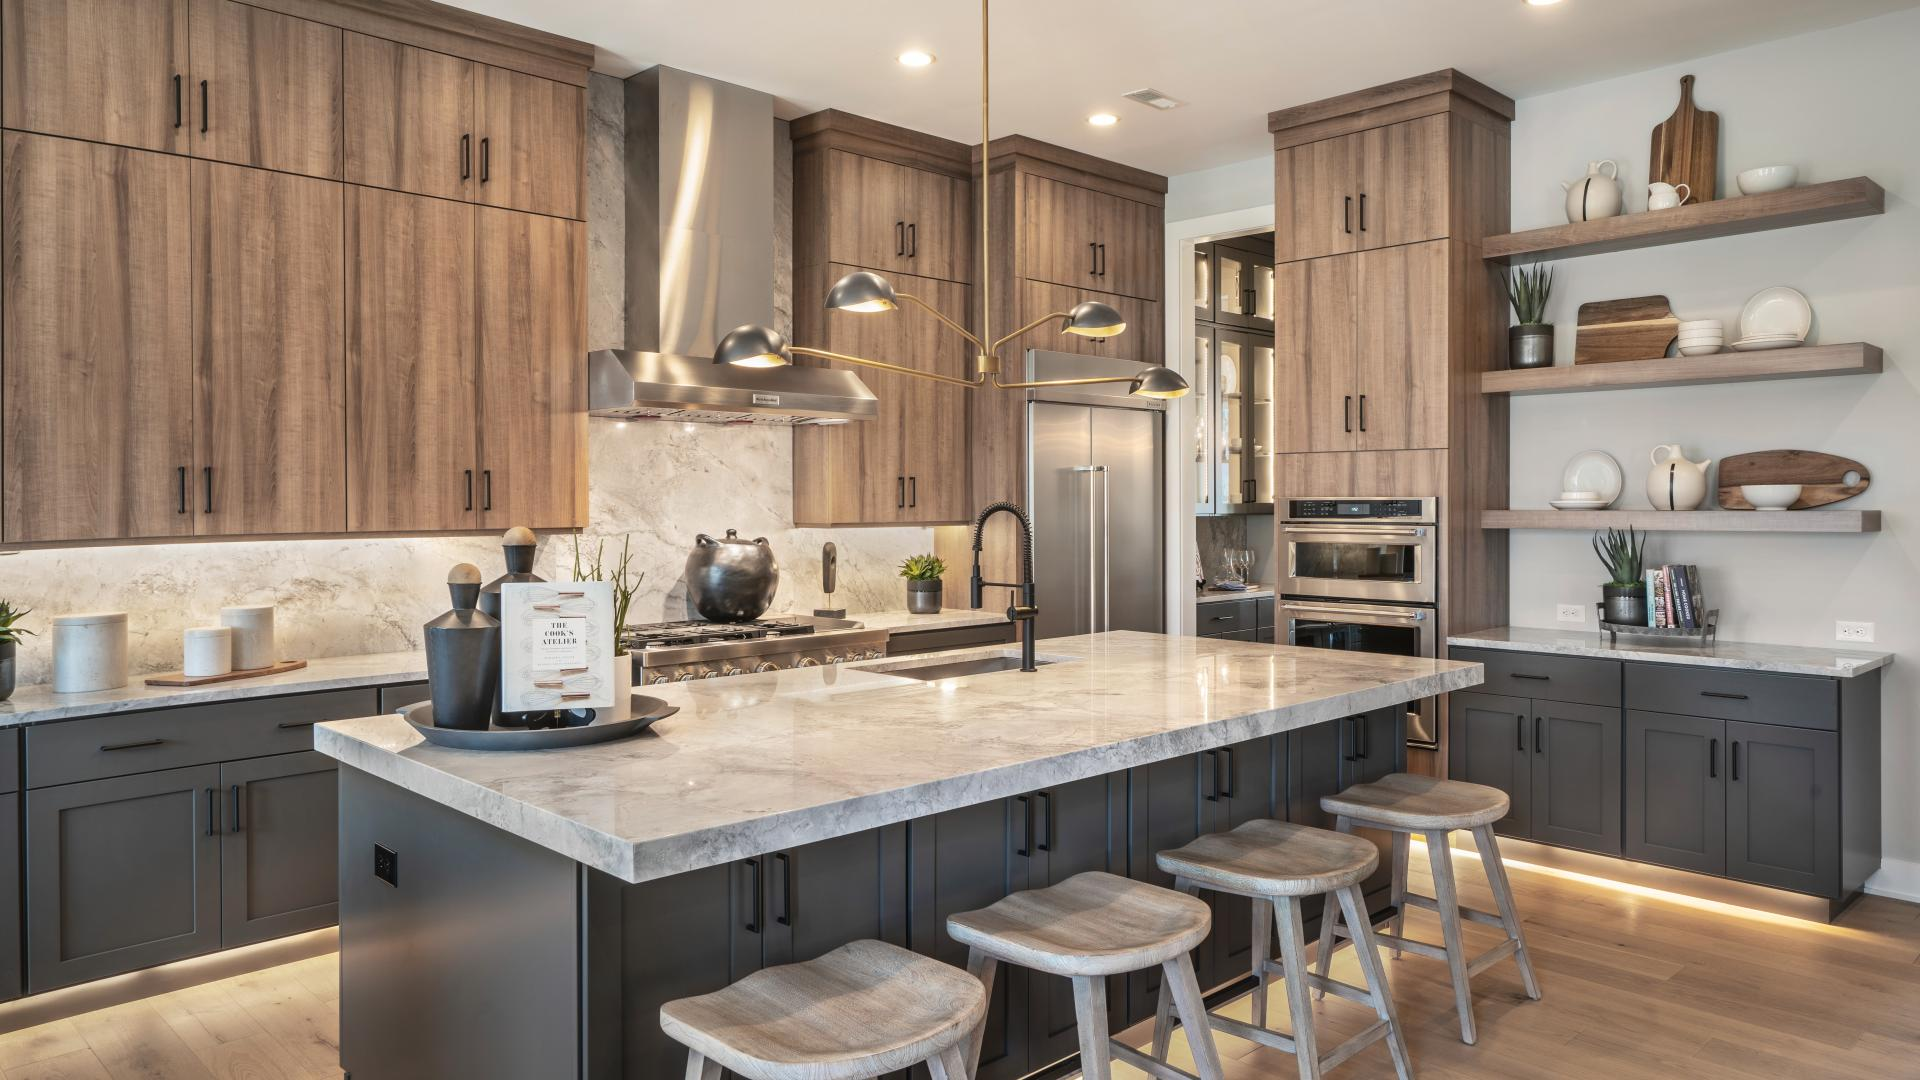 Well-designed kitchens with ample storage